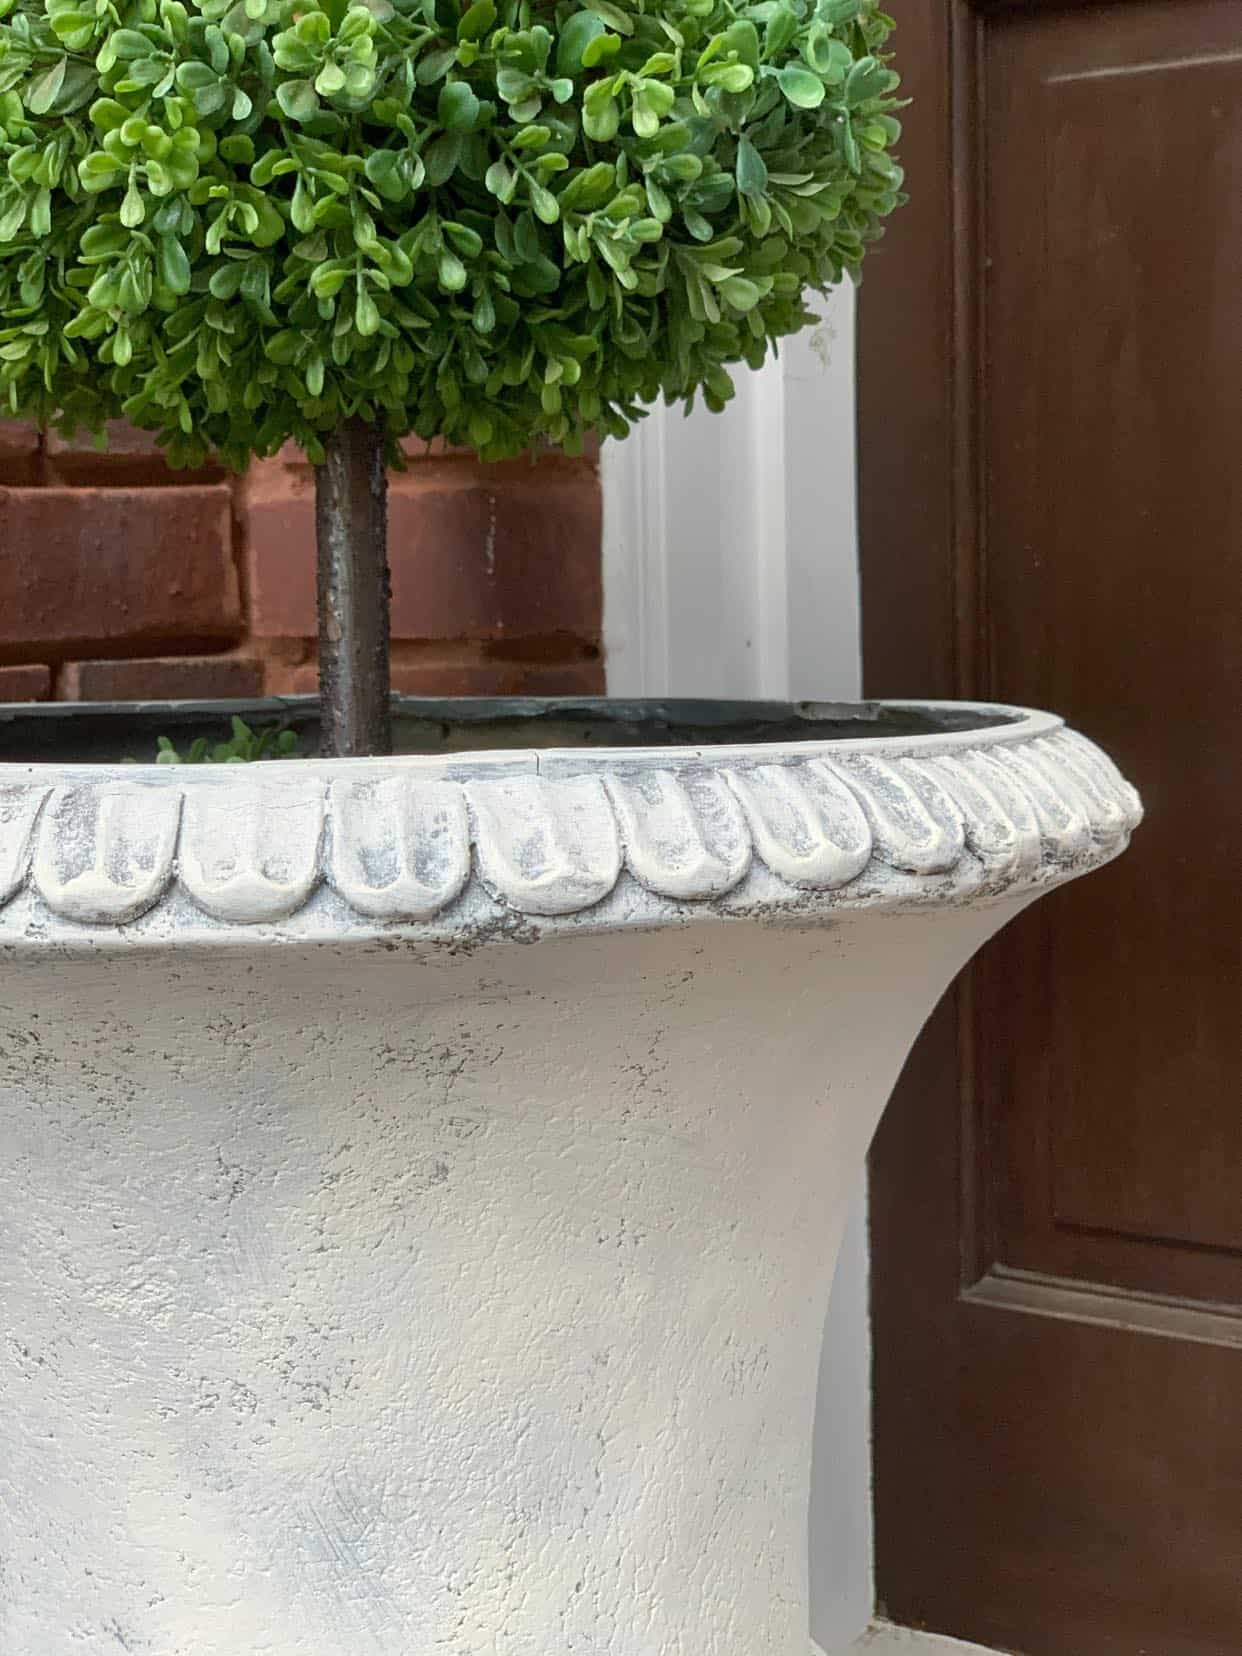 Urns look like aged concrete